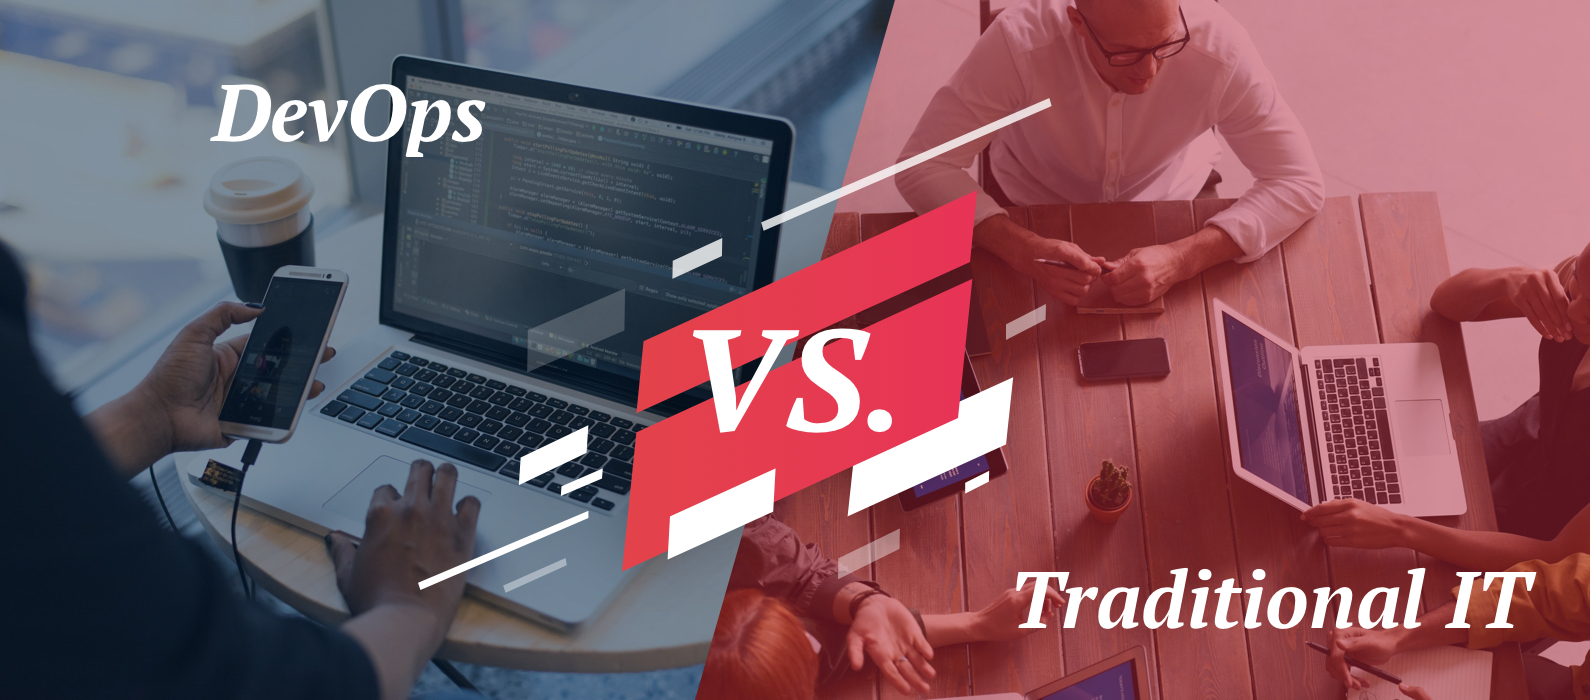 DevOps vs Traditional IT: How DevOps is different from traditional it